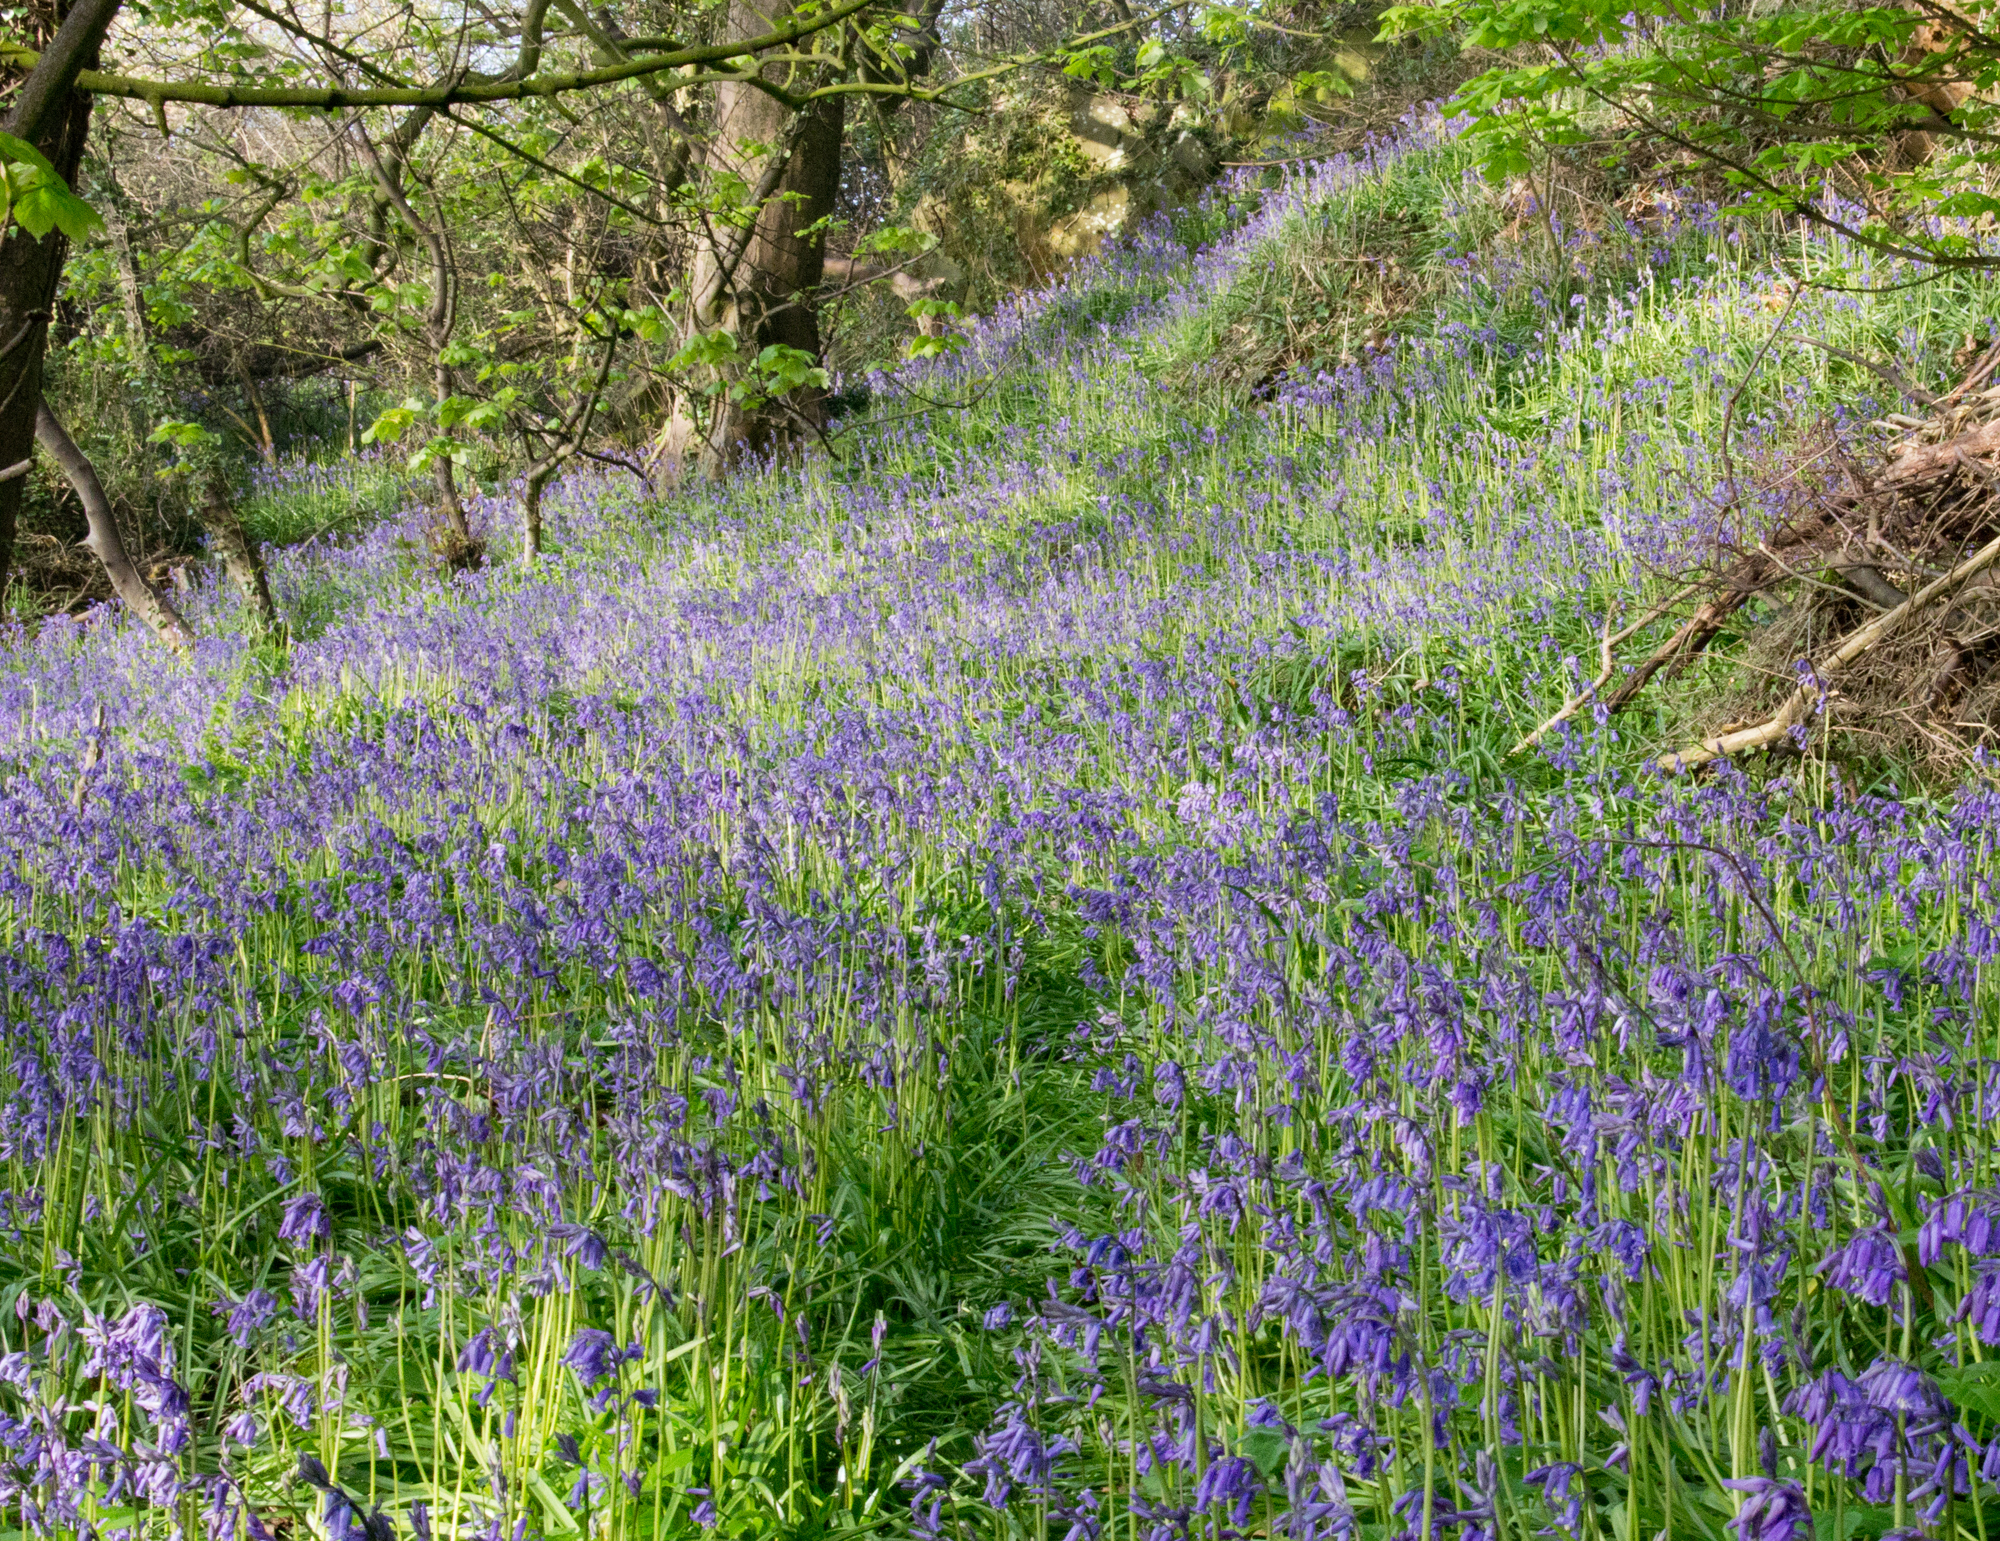 Hopeward Bluebells 29 Apr 2014